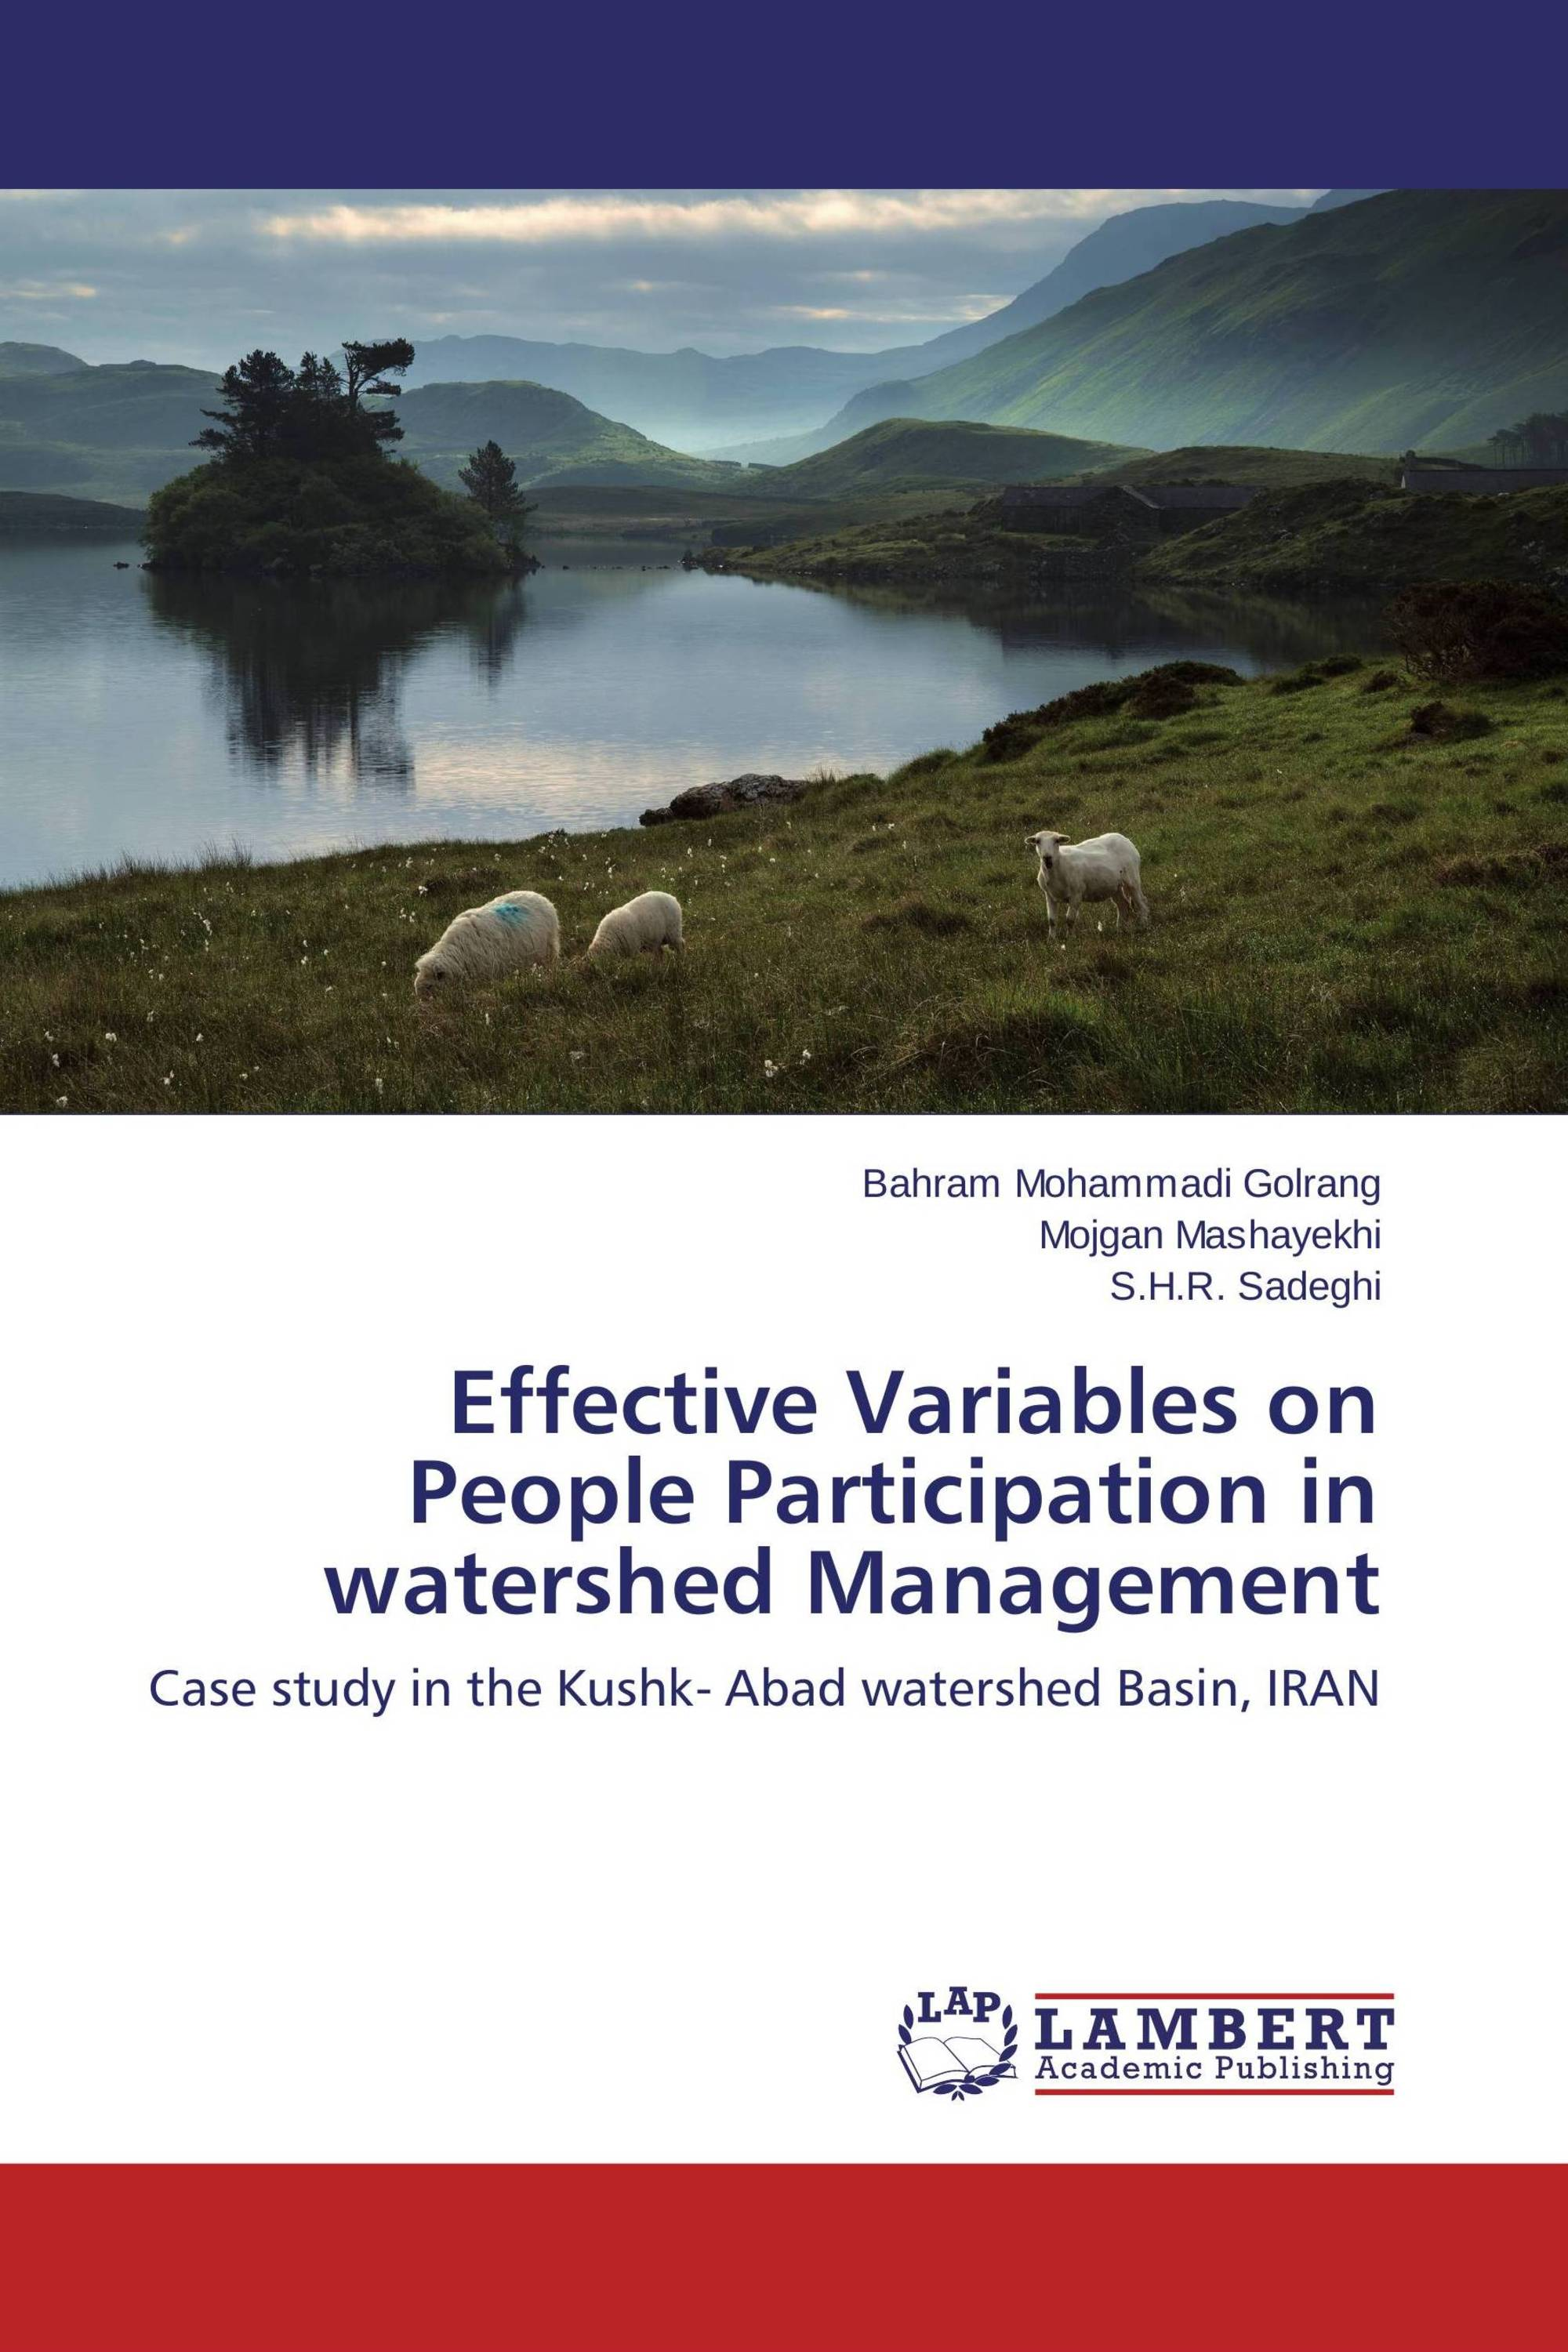 Effective Variables on People Participation in watershed Management